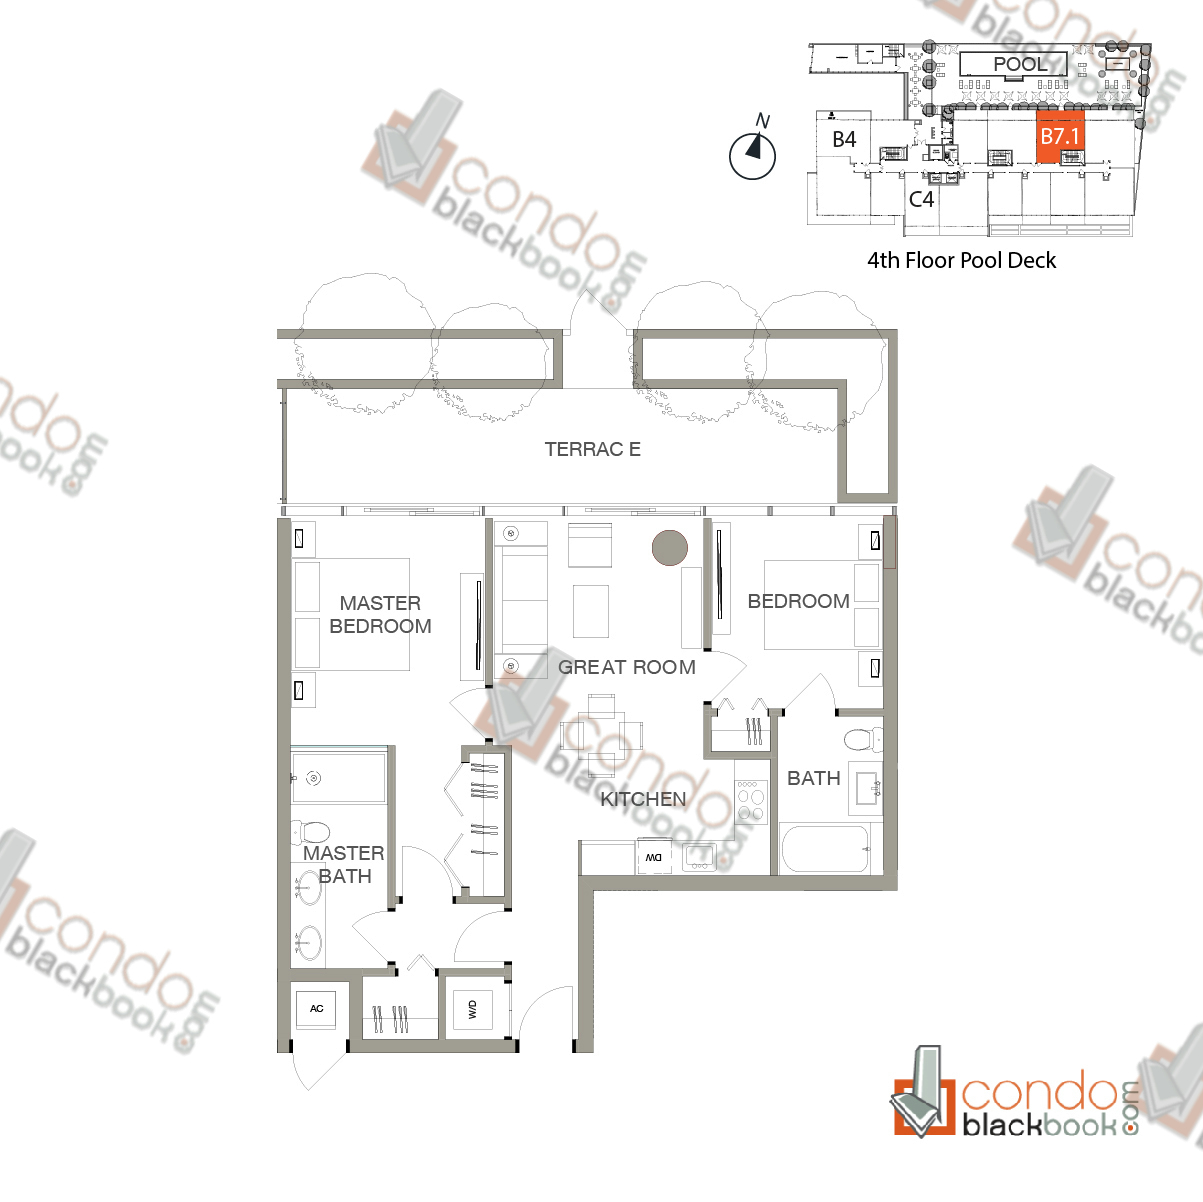 Floor plan for Le Parc at Brickell Brickell Miami, model UNIT B7.1, line B7.1 (Floor 4 Pool Deck), 2/2 bedrooms, 897 sq ft